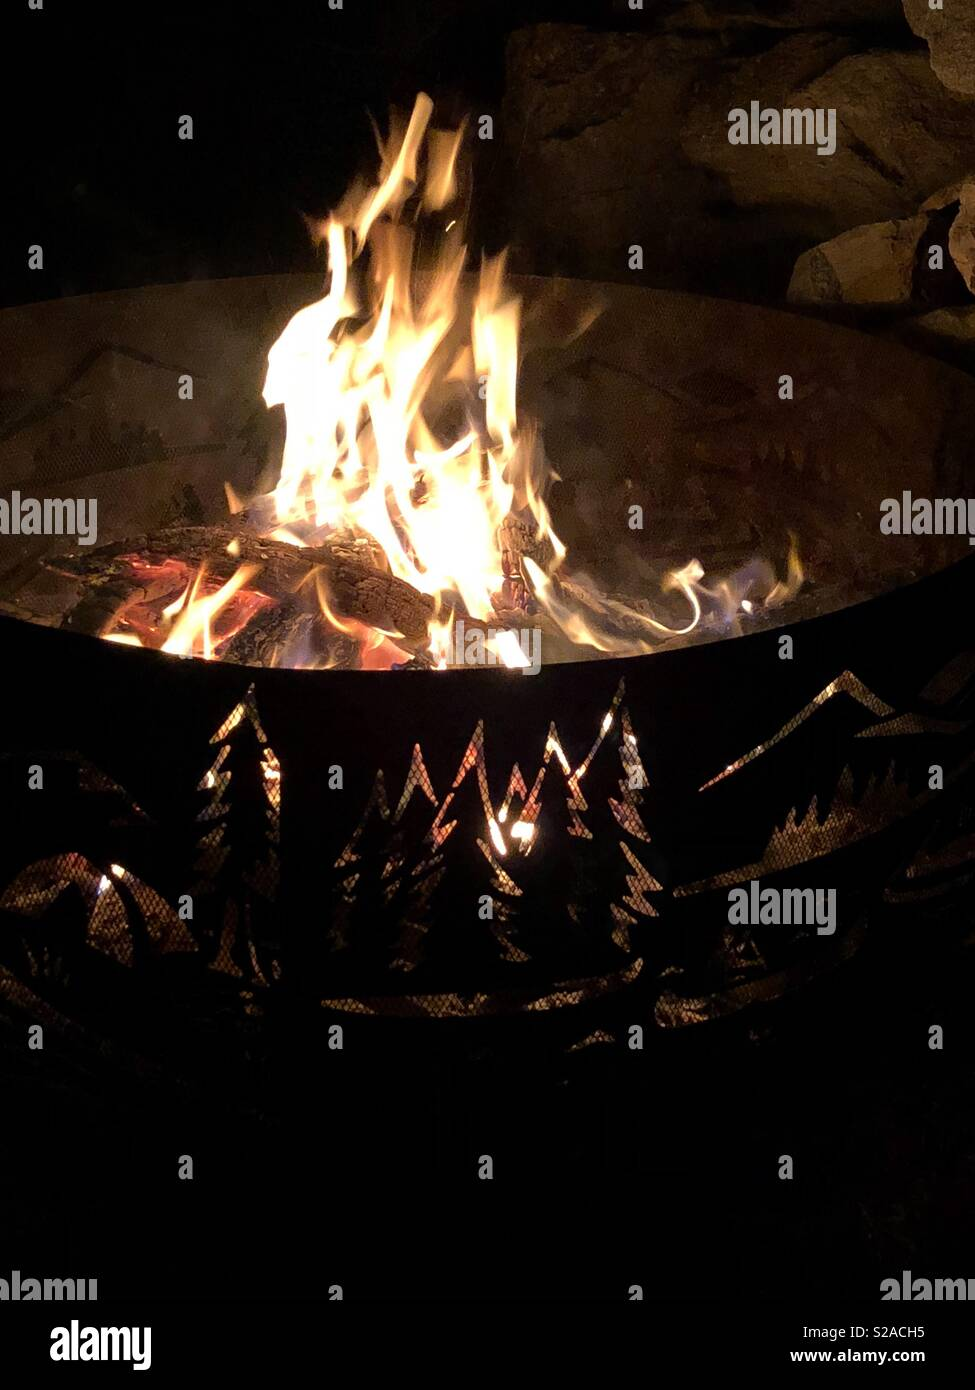 A campfire burns in a fire ring decorated with a cutout outdoor scene. - Stock Image